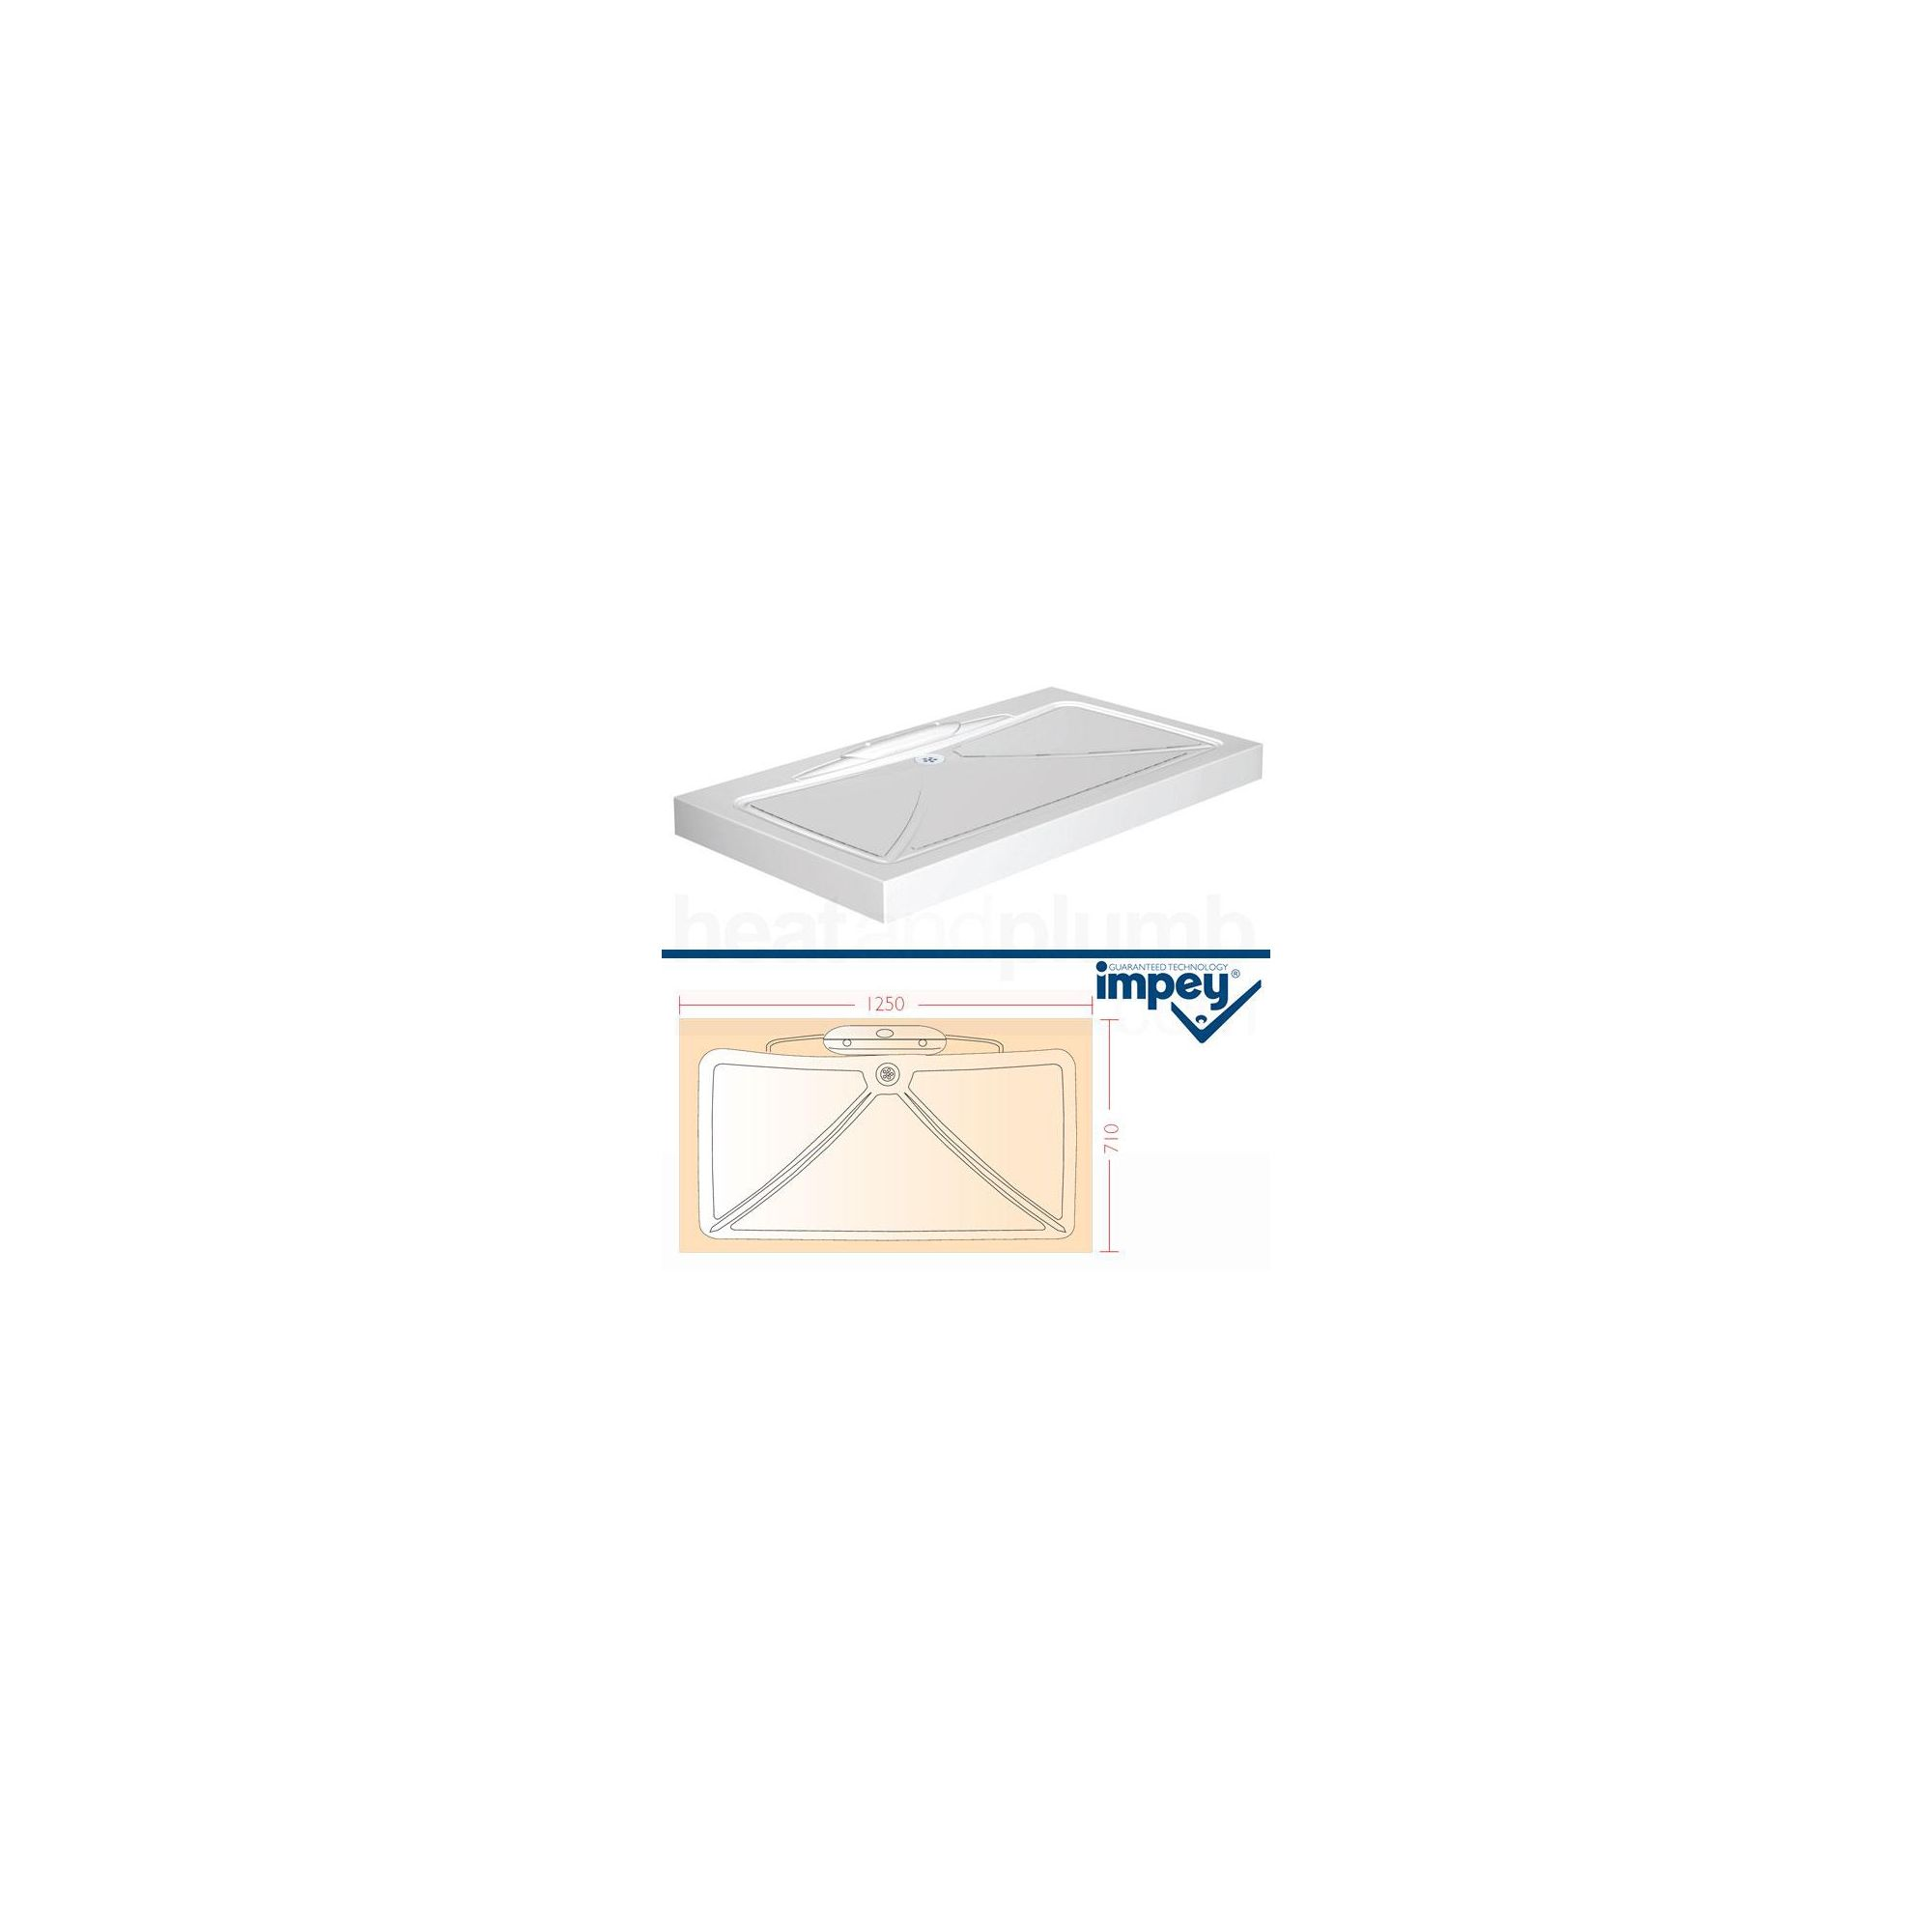 Impey Mendip Shower Tray 1250mm x 710mm at Tescos Direct